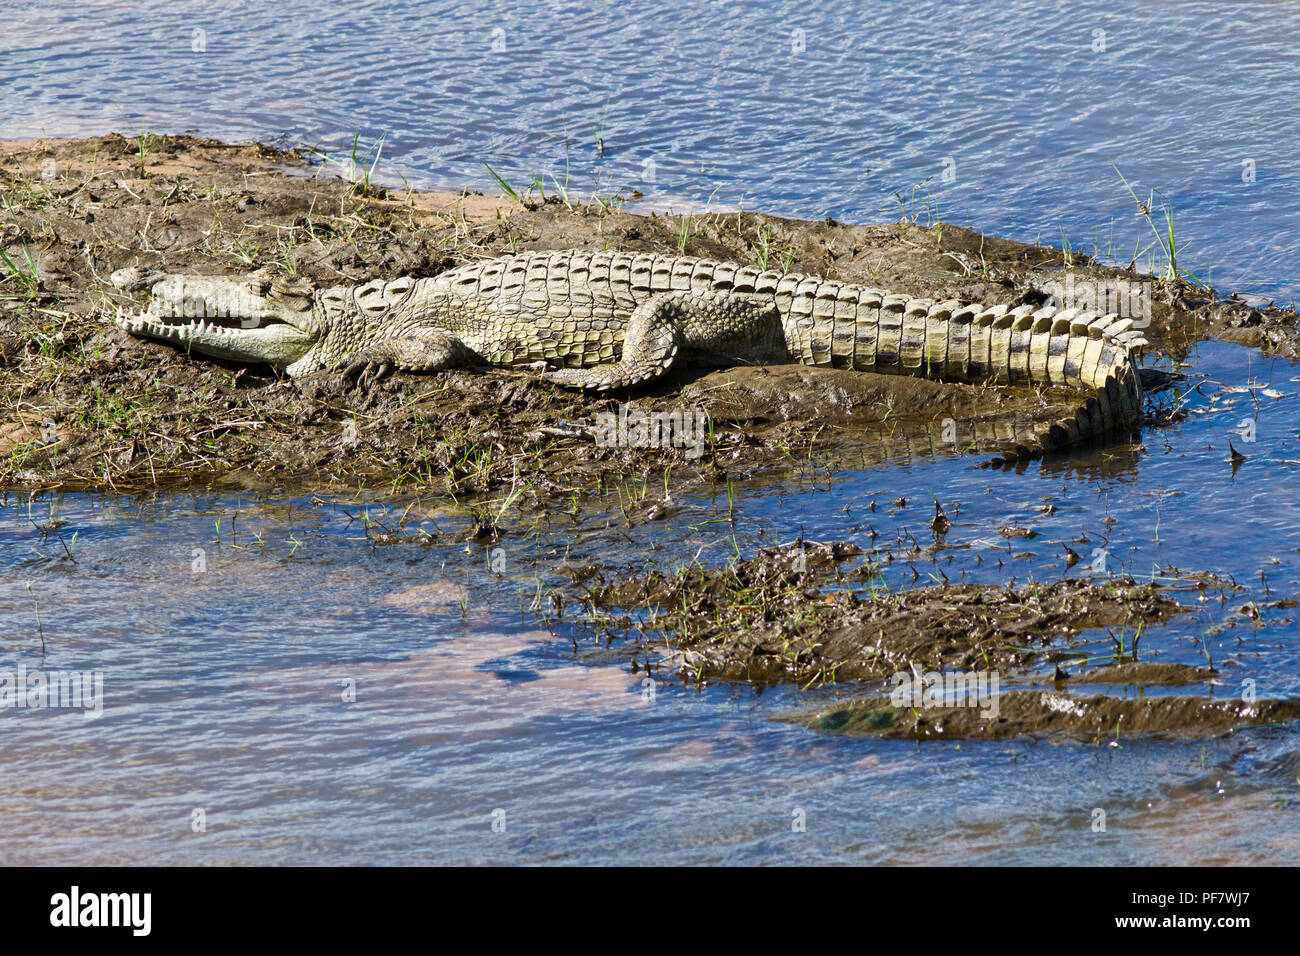 A three meter Crocodile basks in the warm morning sunshine on a small sand bank in the Great Ruaha River. Crocodiles have a very efficient blood circu - Stock Image